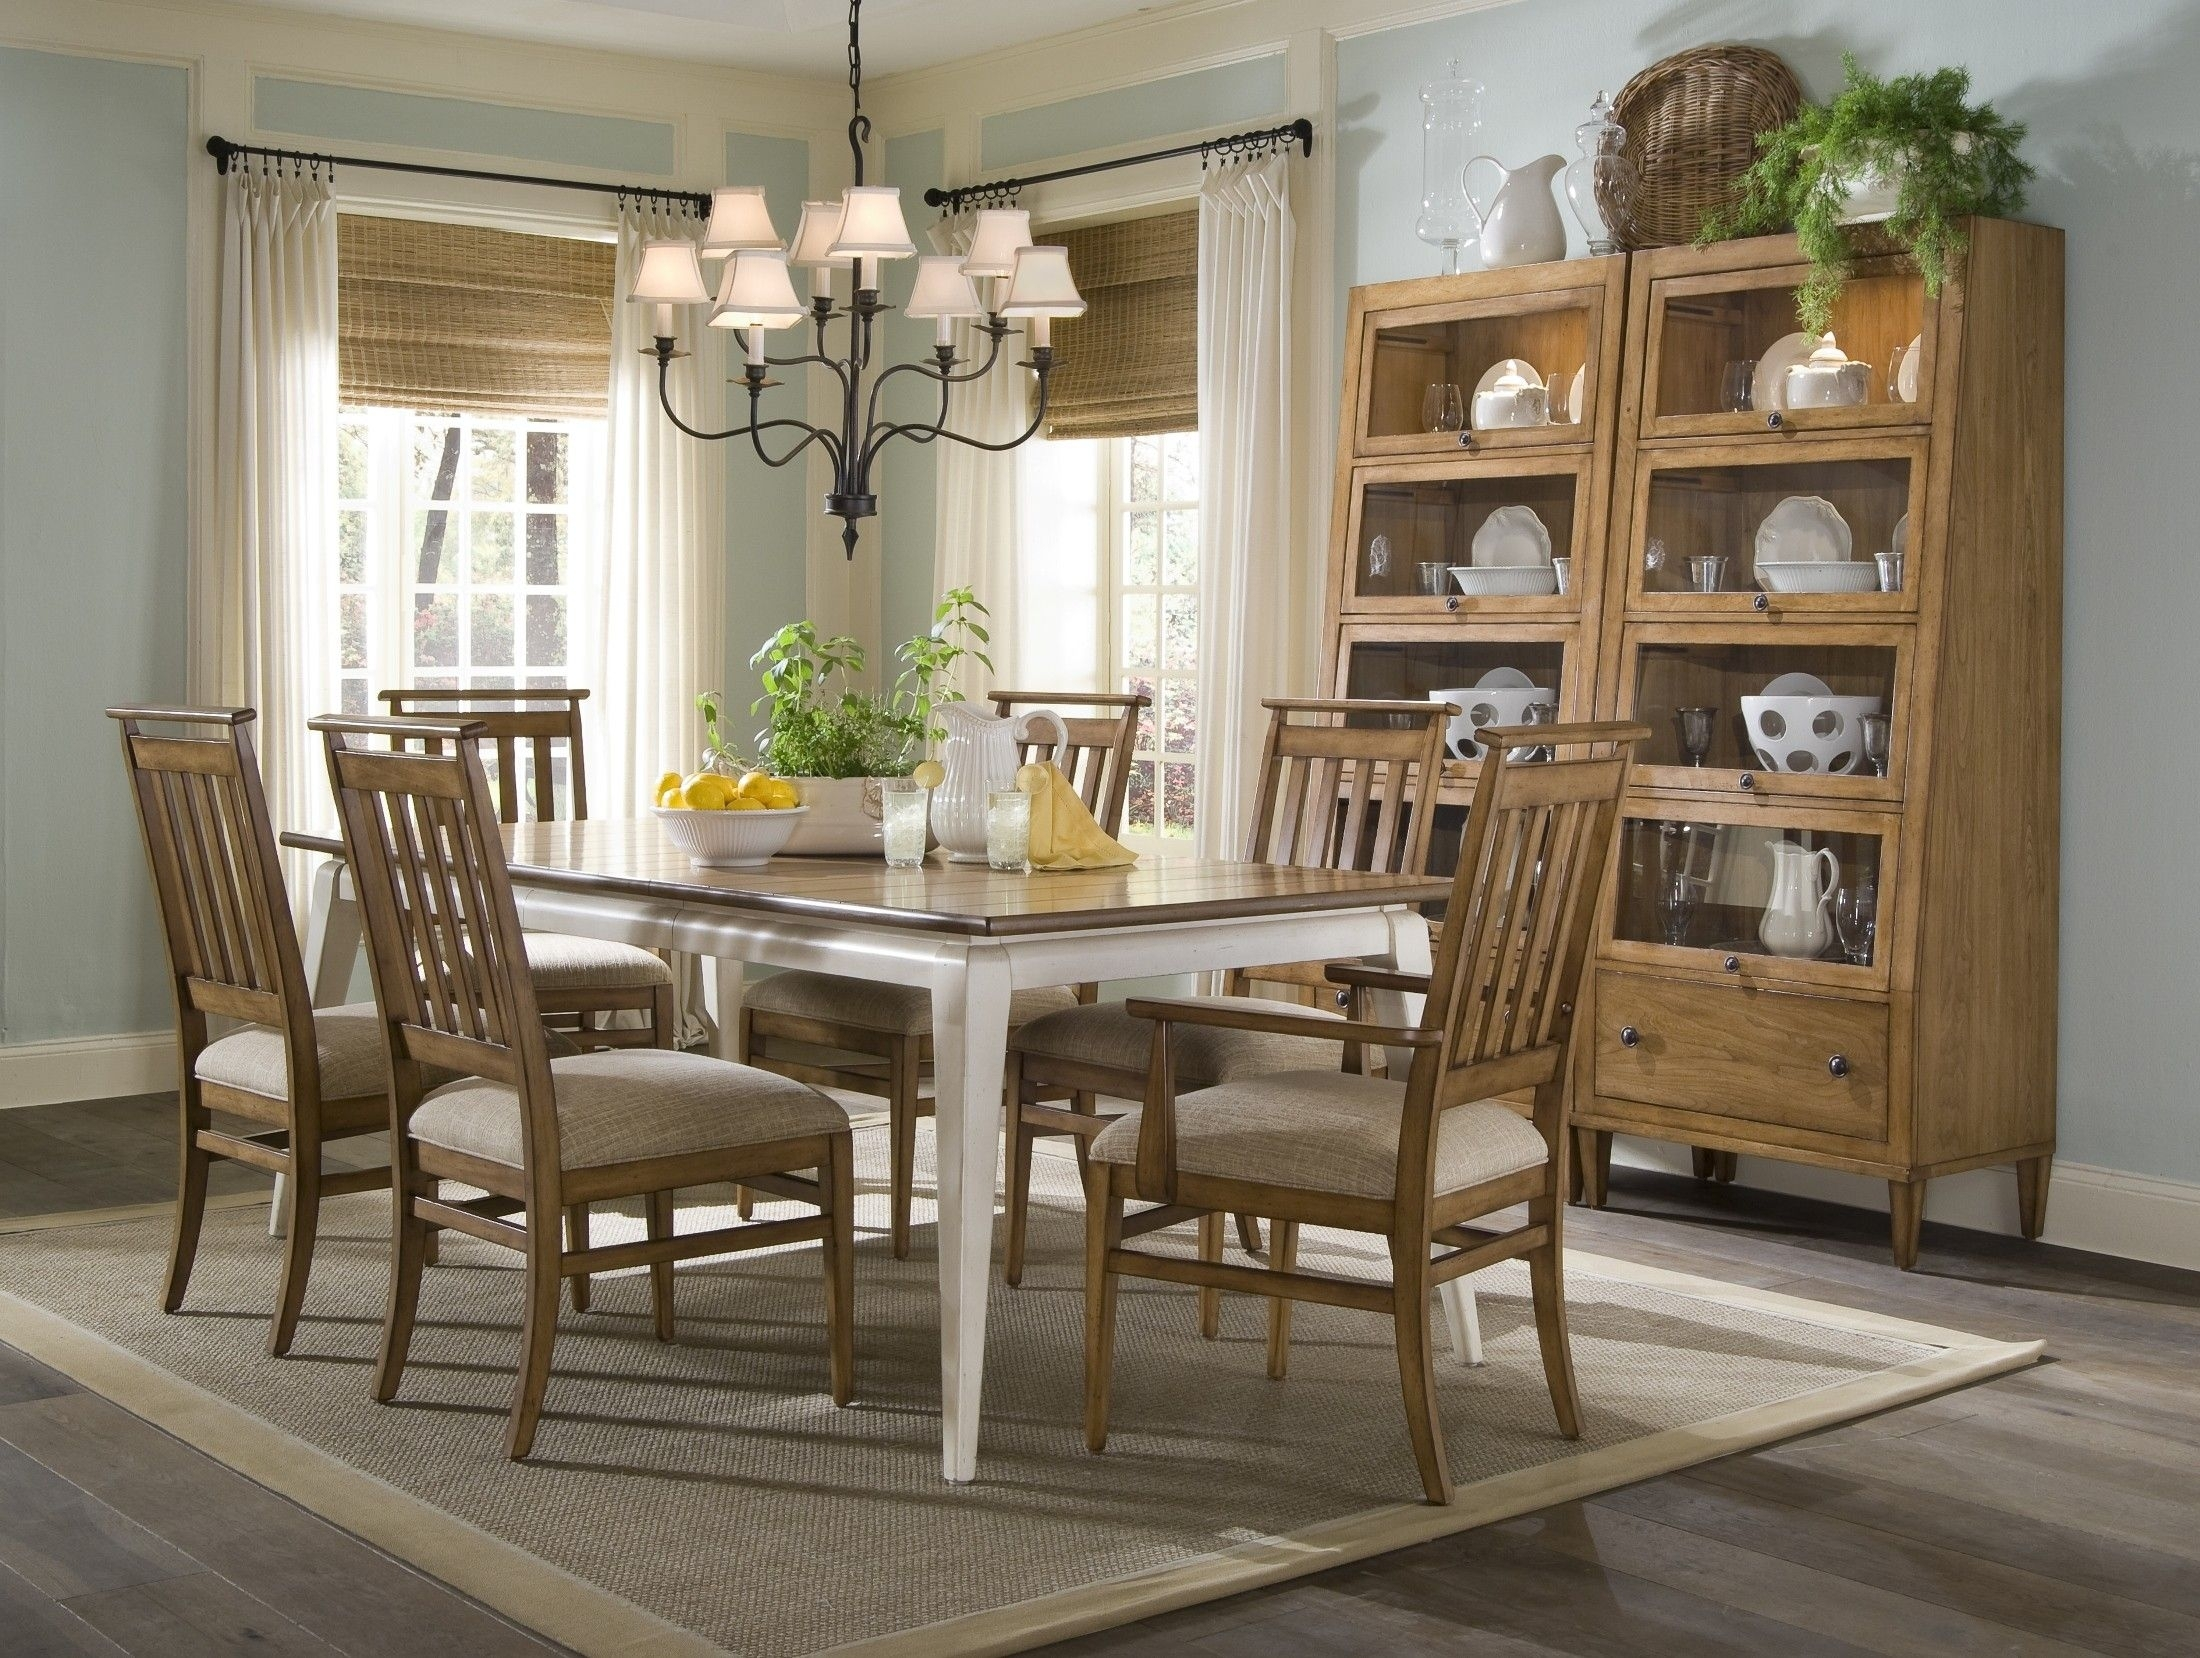 Country Dining Room Furniture Inside Modern Design White Decorating For Most Up To Date Norwood 7 Piece Rectangular Extension Dining Sets With Bench, Host & Side Chairs (Photo 15 of 20)